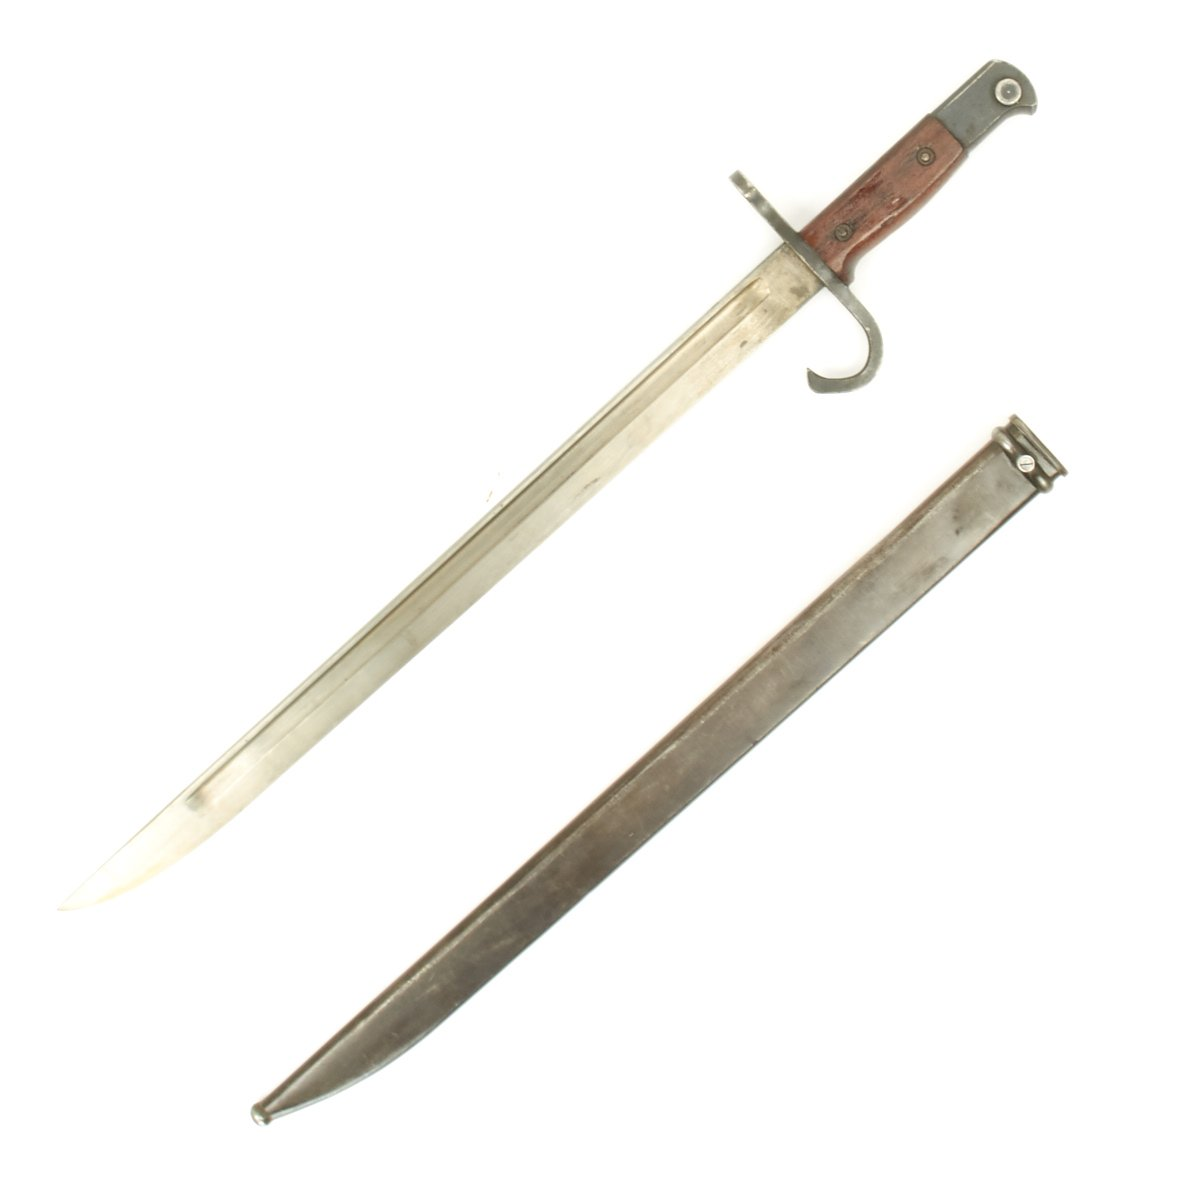 Original Japanese WWII Early Pattern Arisaka Type 30 Bayonet with